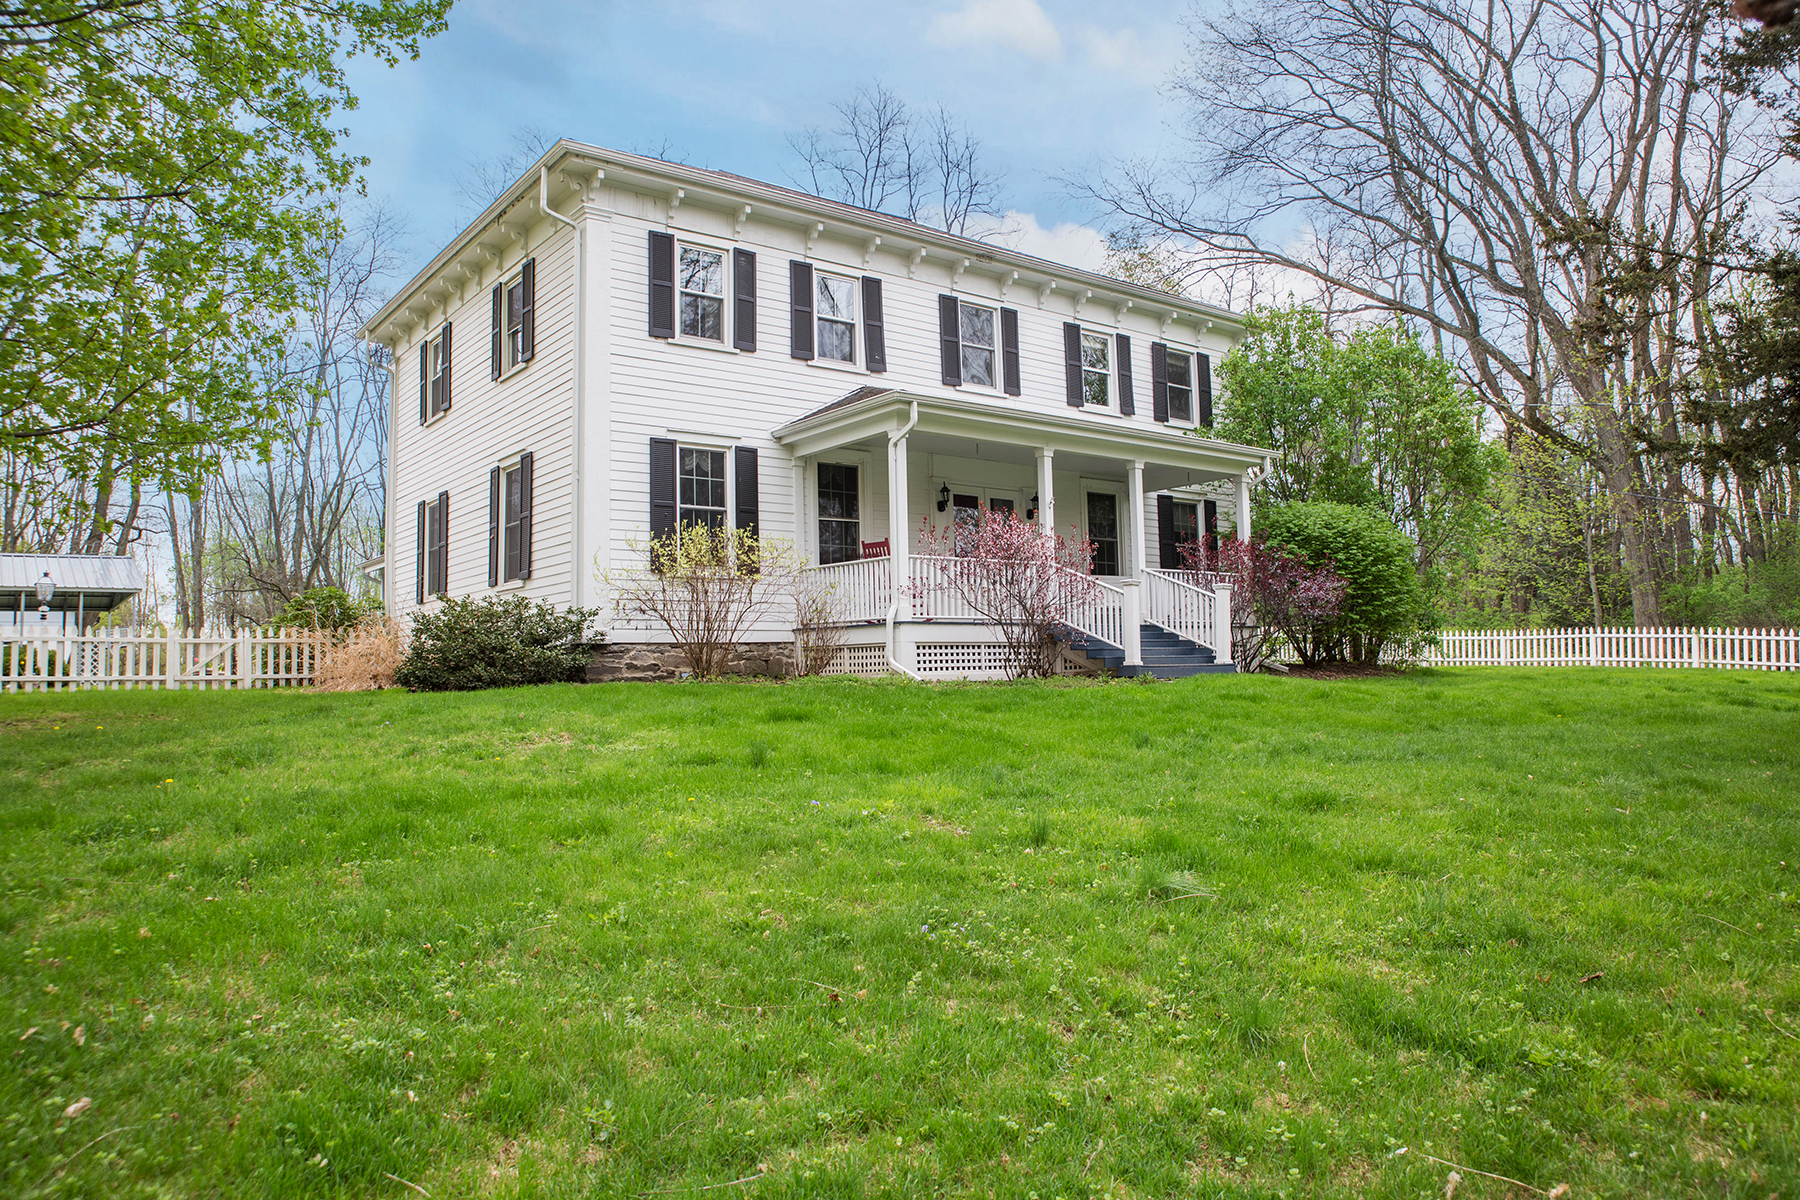 Single Family Home for Sale at Dancing Dog Farm 44 Schuurman Rd Castleton, New York 12033 United States